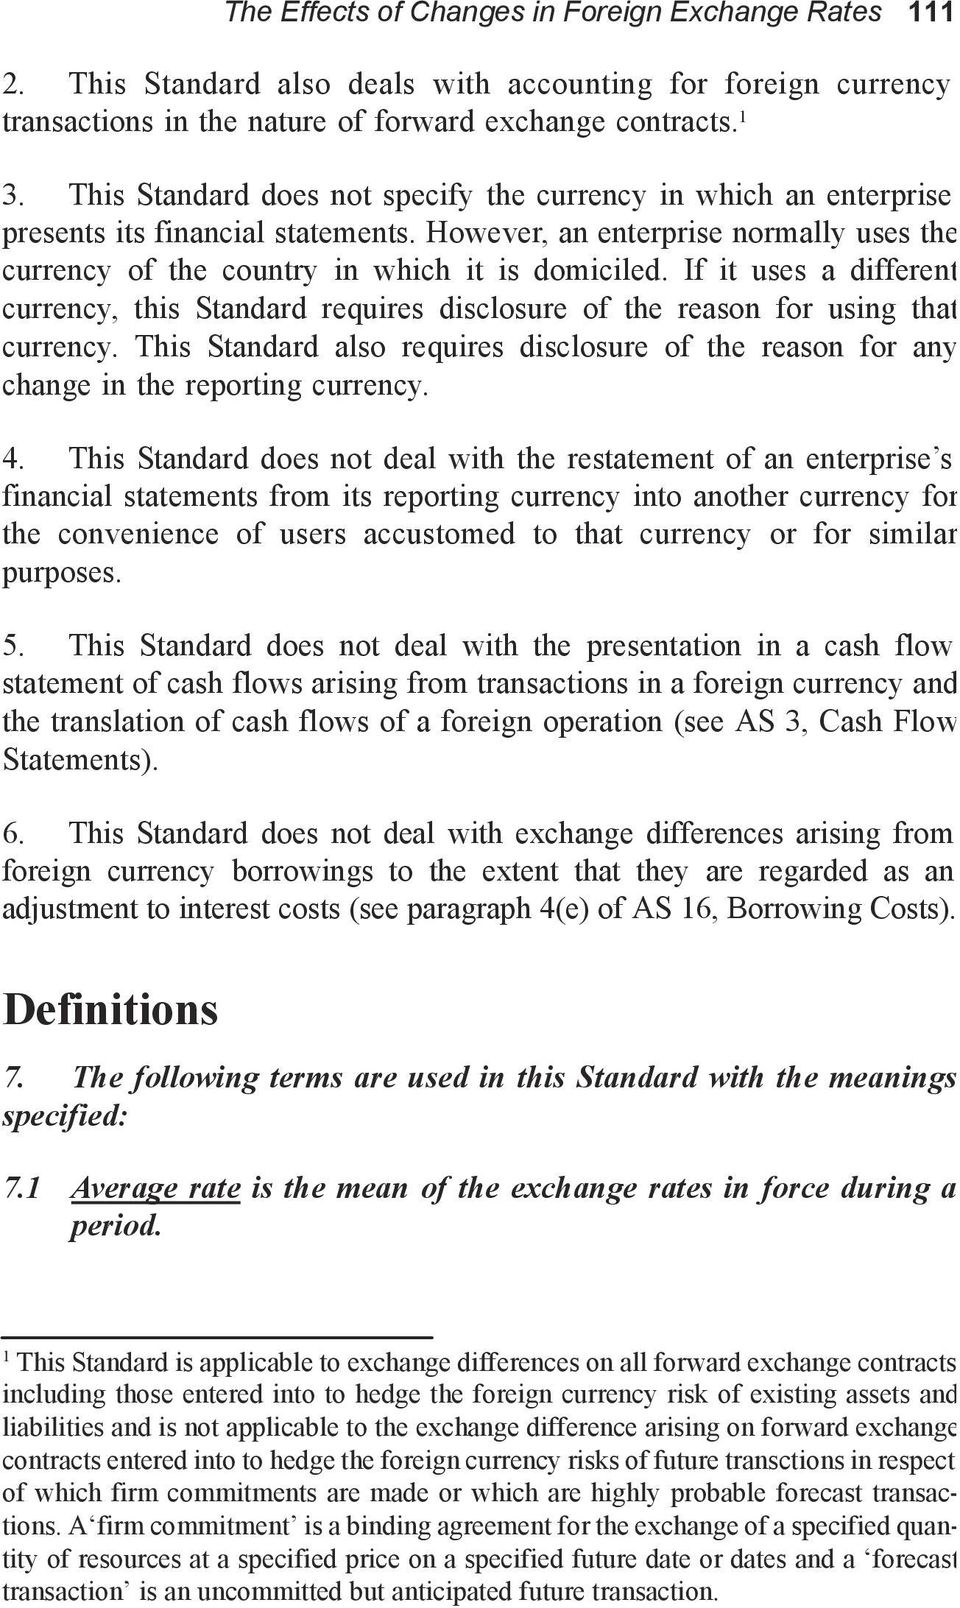 If it uses a different currency, this Standard requires disclosure of the reason for using that currency. This Standard also requires disclosure of the reason for any change in the reporting currency.